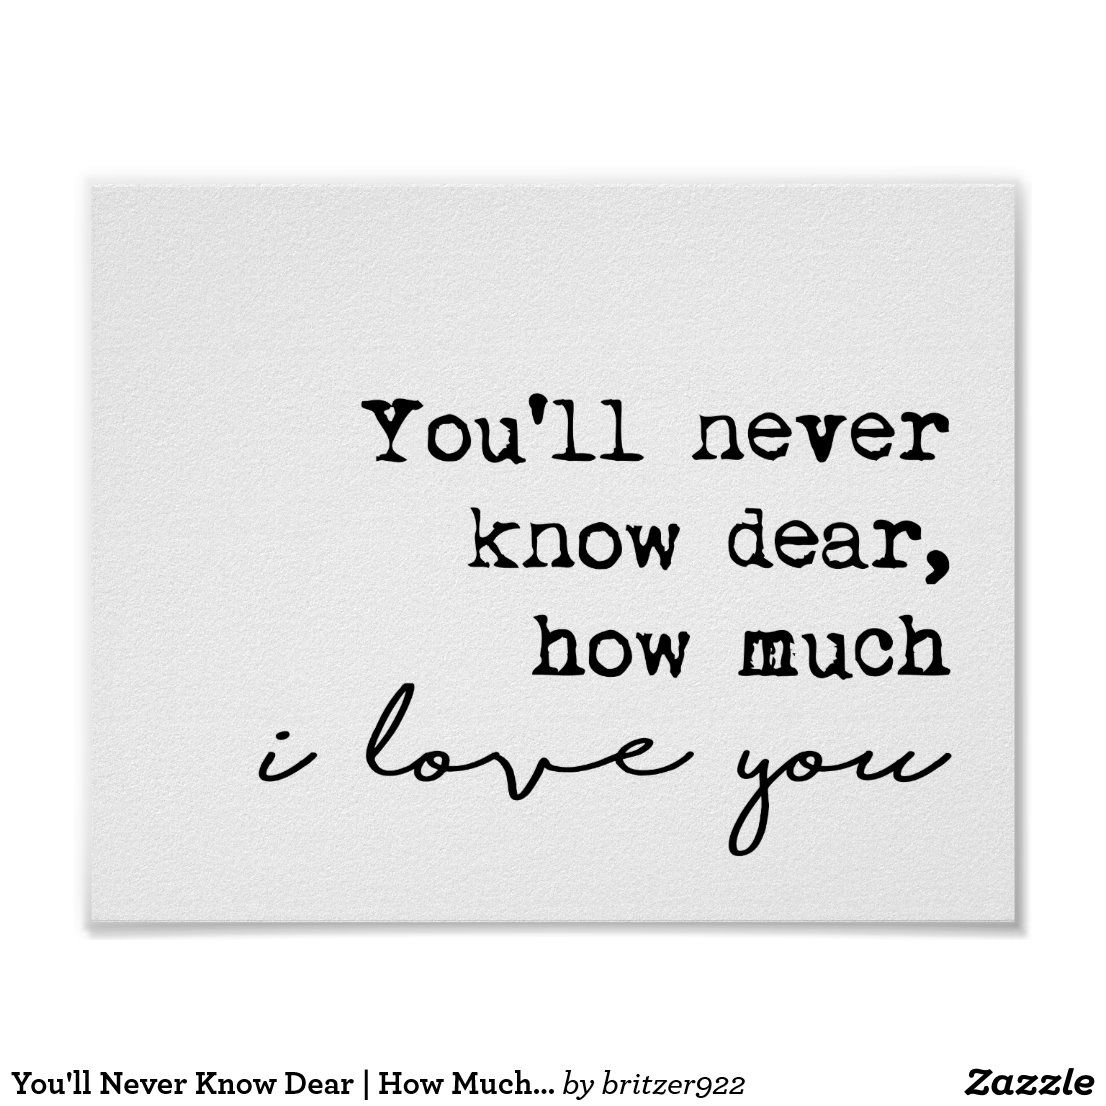 You Ll Never Know Dear How Much I Love You Poster Zazzle Com In 2021 Meeting You Quotes My Love Sunshine Quotes